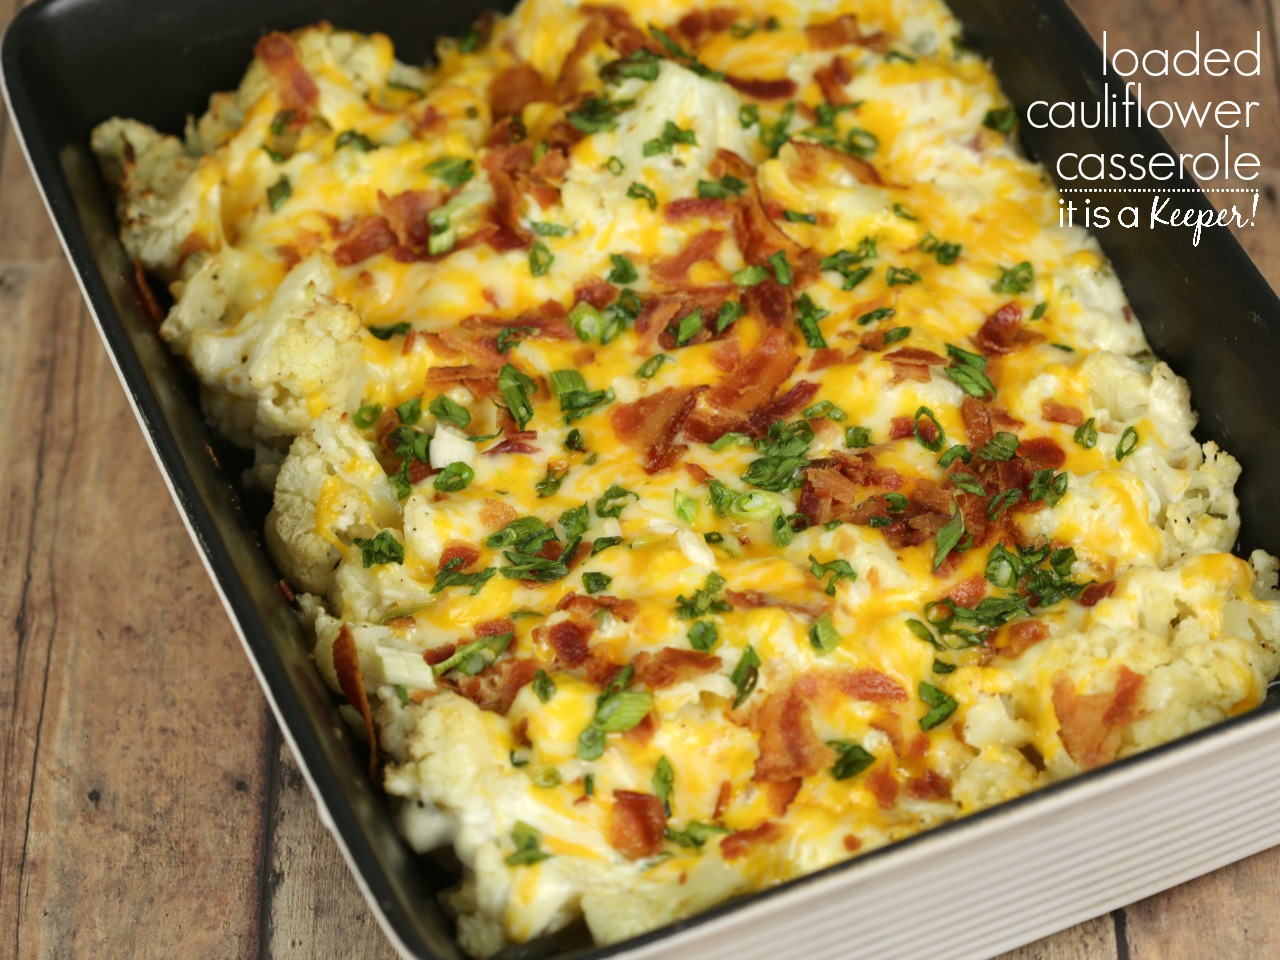 Loaded Cauliflower Casserole - This incredible casserole recipe is loaded with bacon and cheese goodness